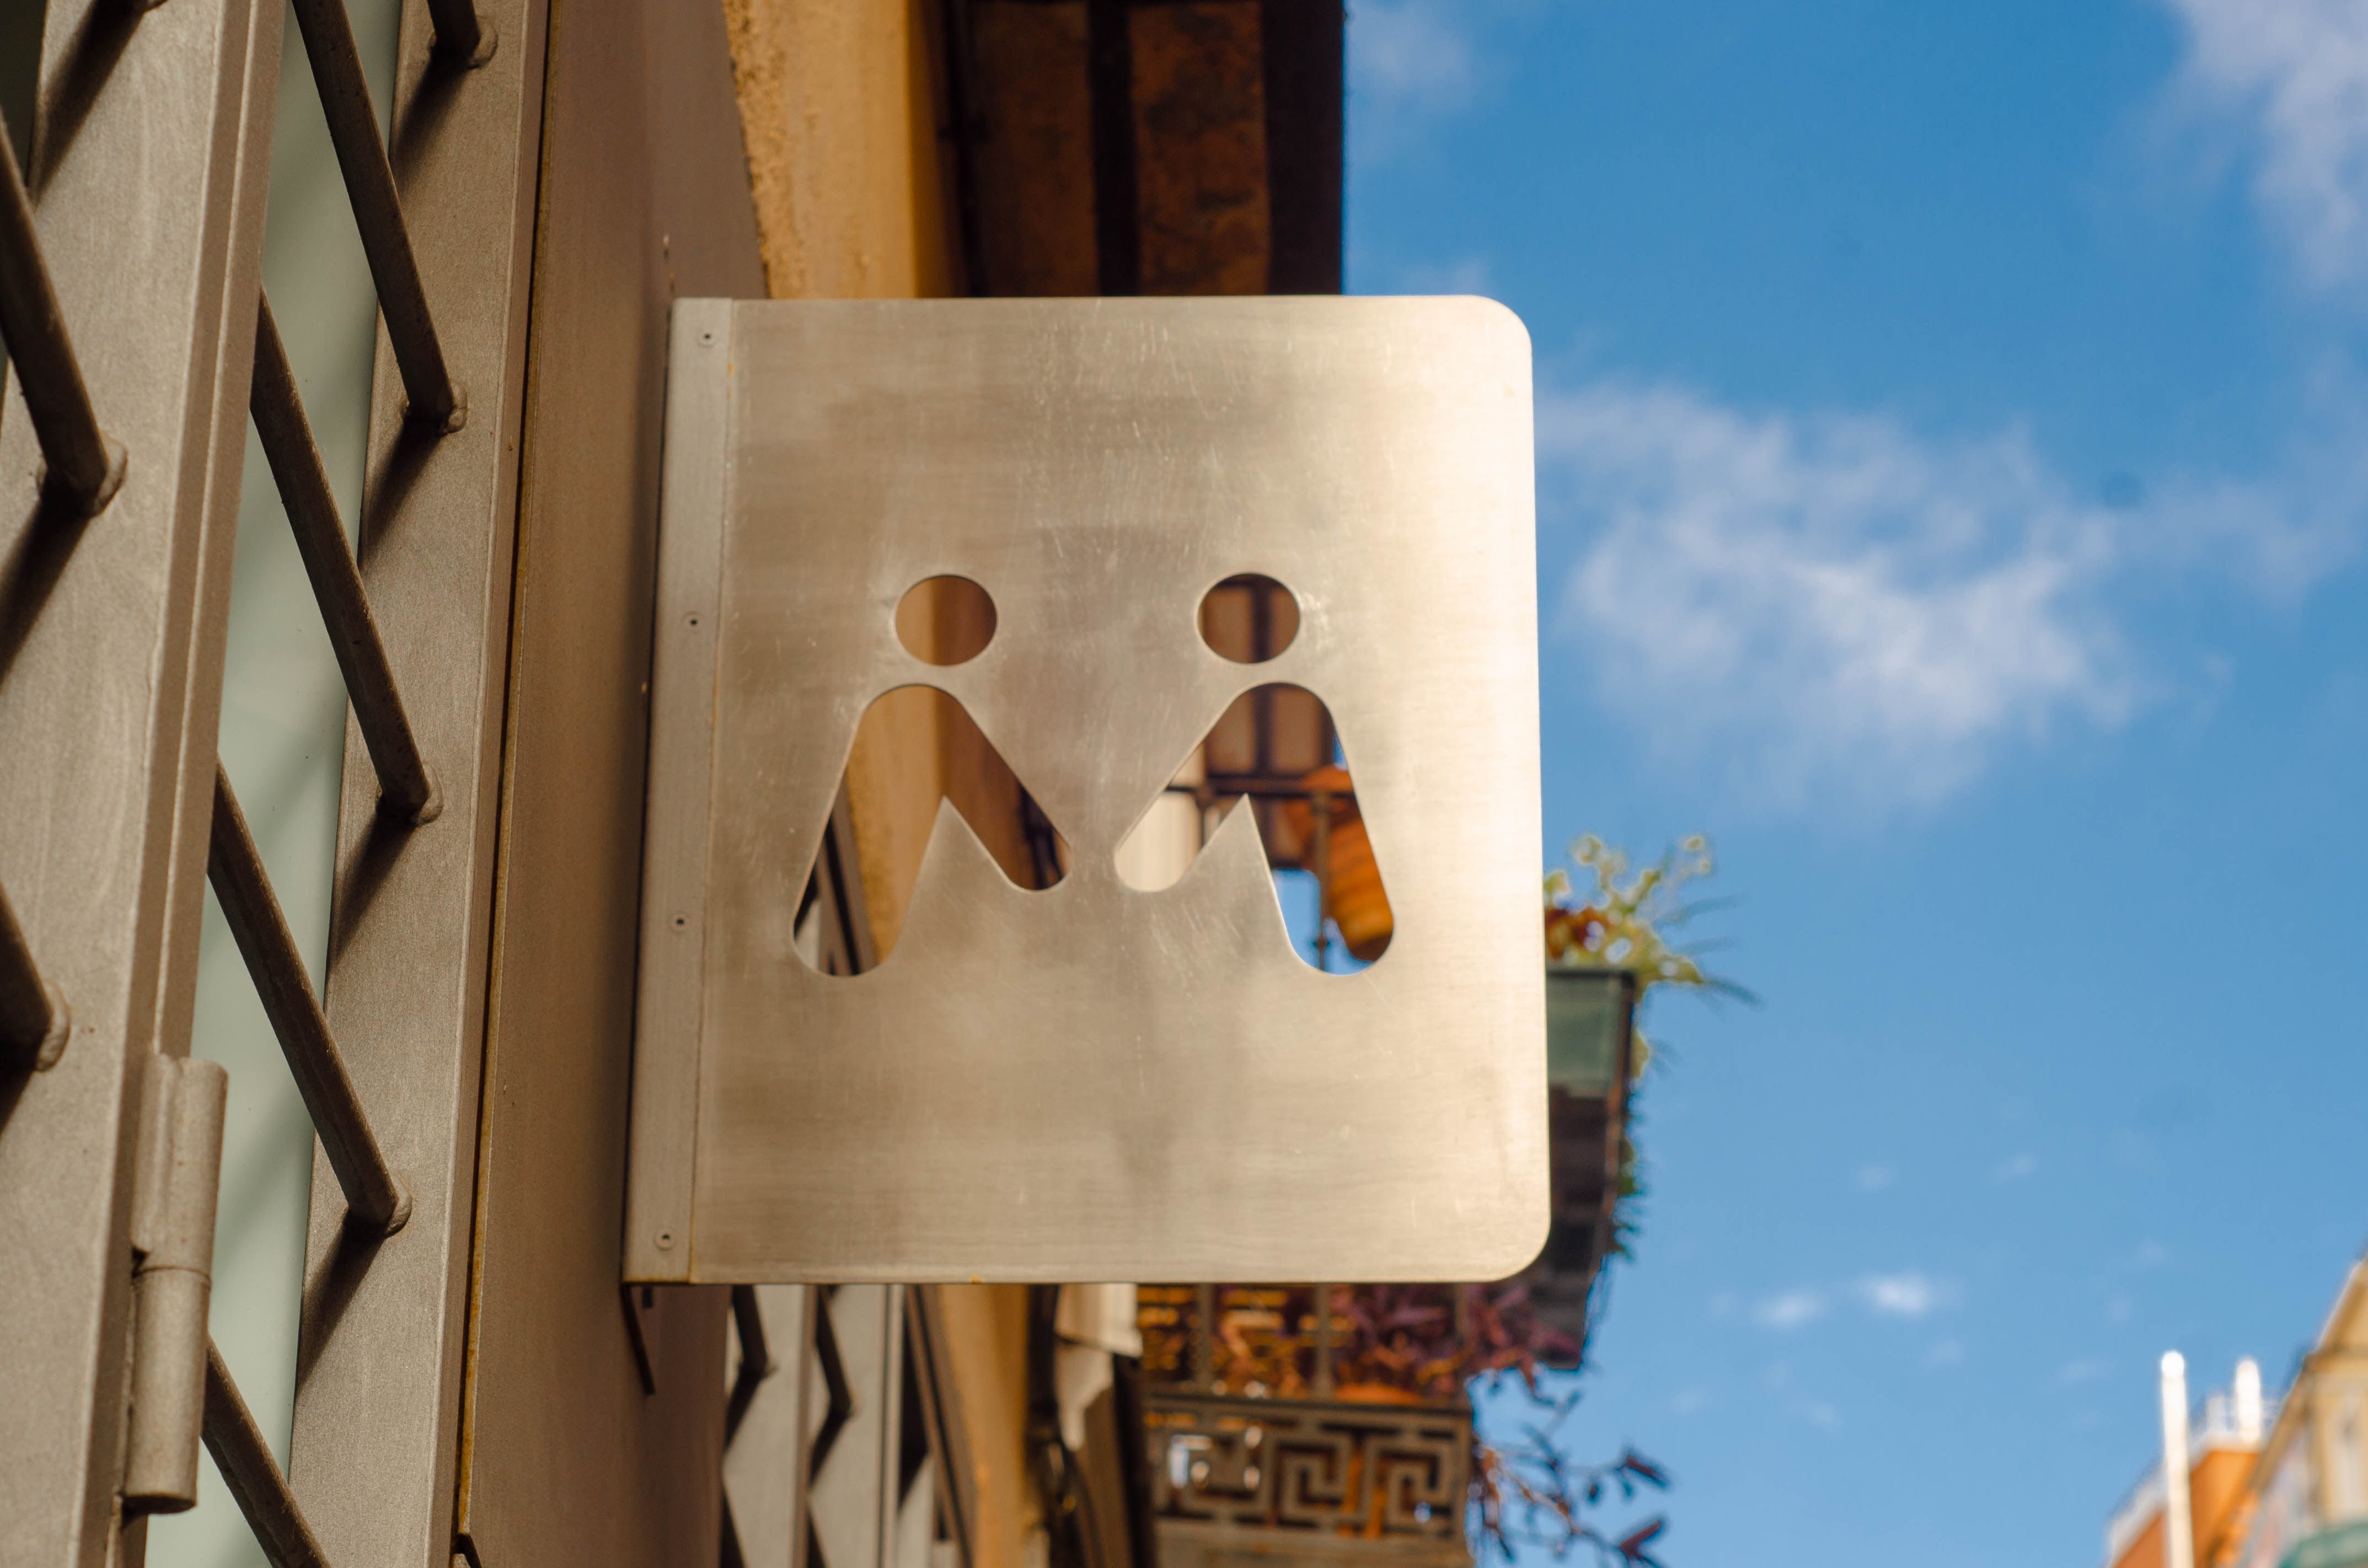 two person holding hands signage during daytime